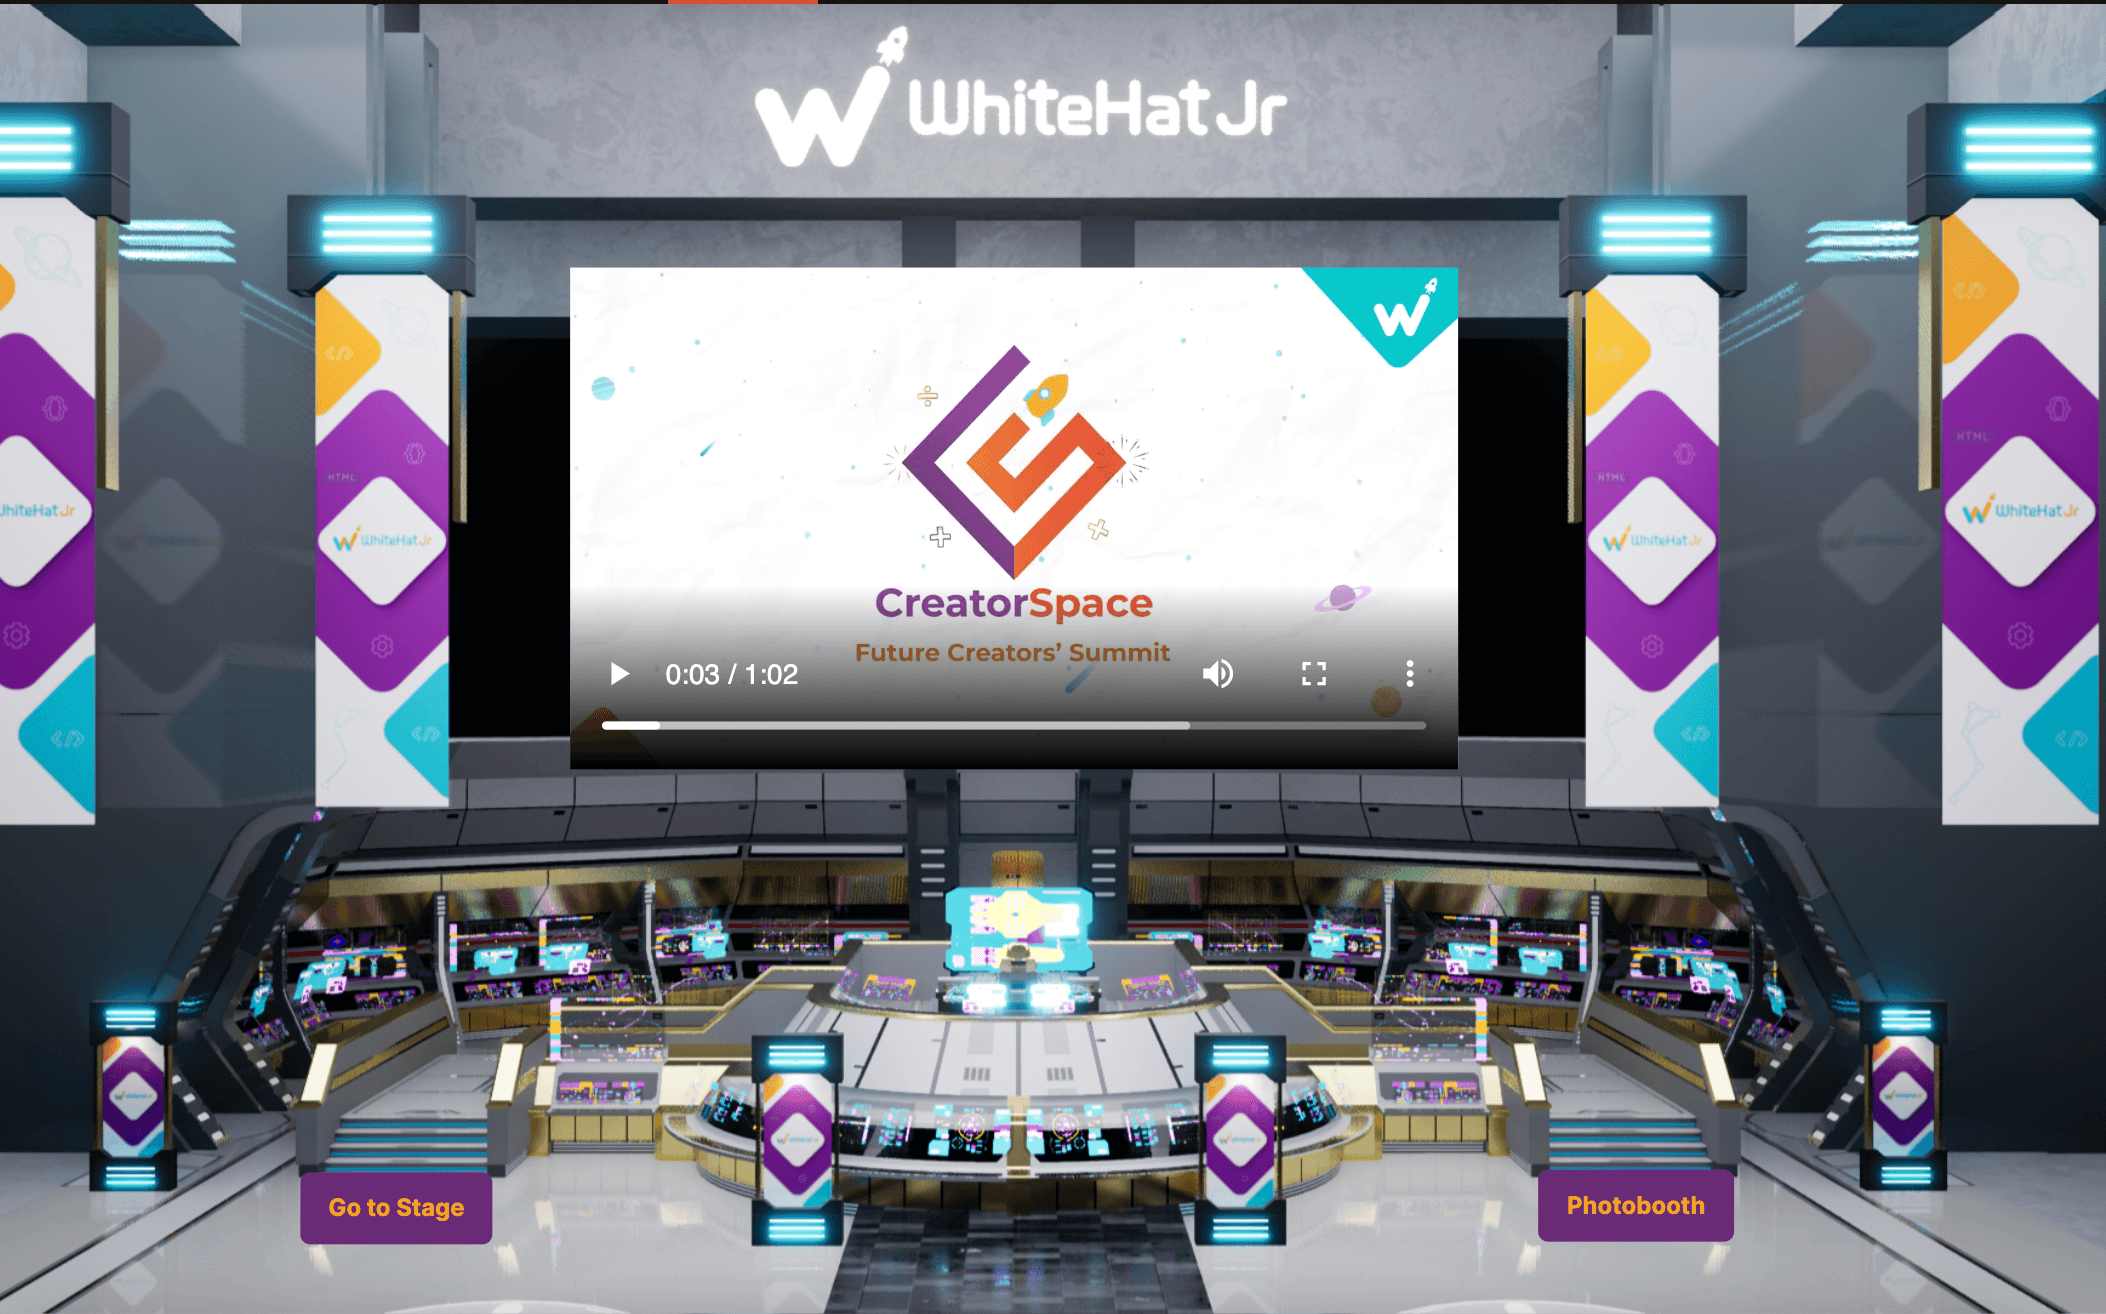 Coding a brighter future: How WhiteHat Jr's virtual summit for 15k+ kids celebrates and inspires the next generation of creators